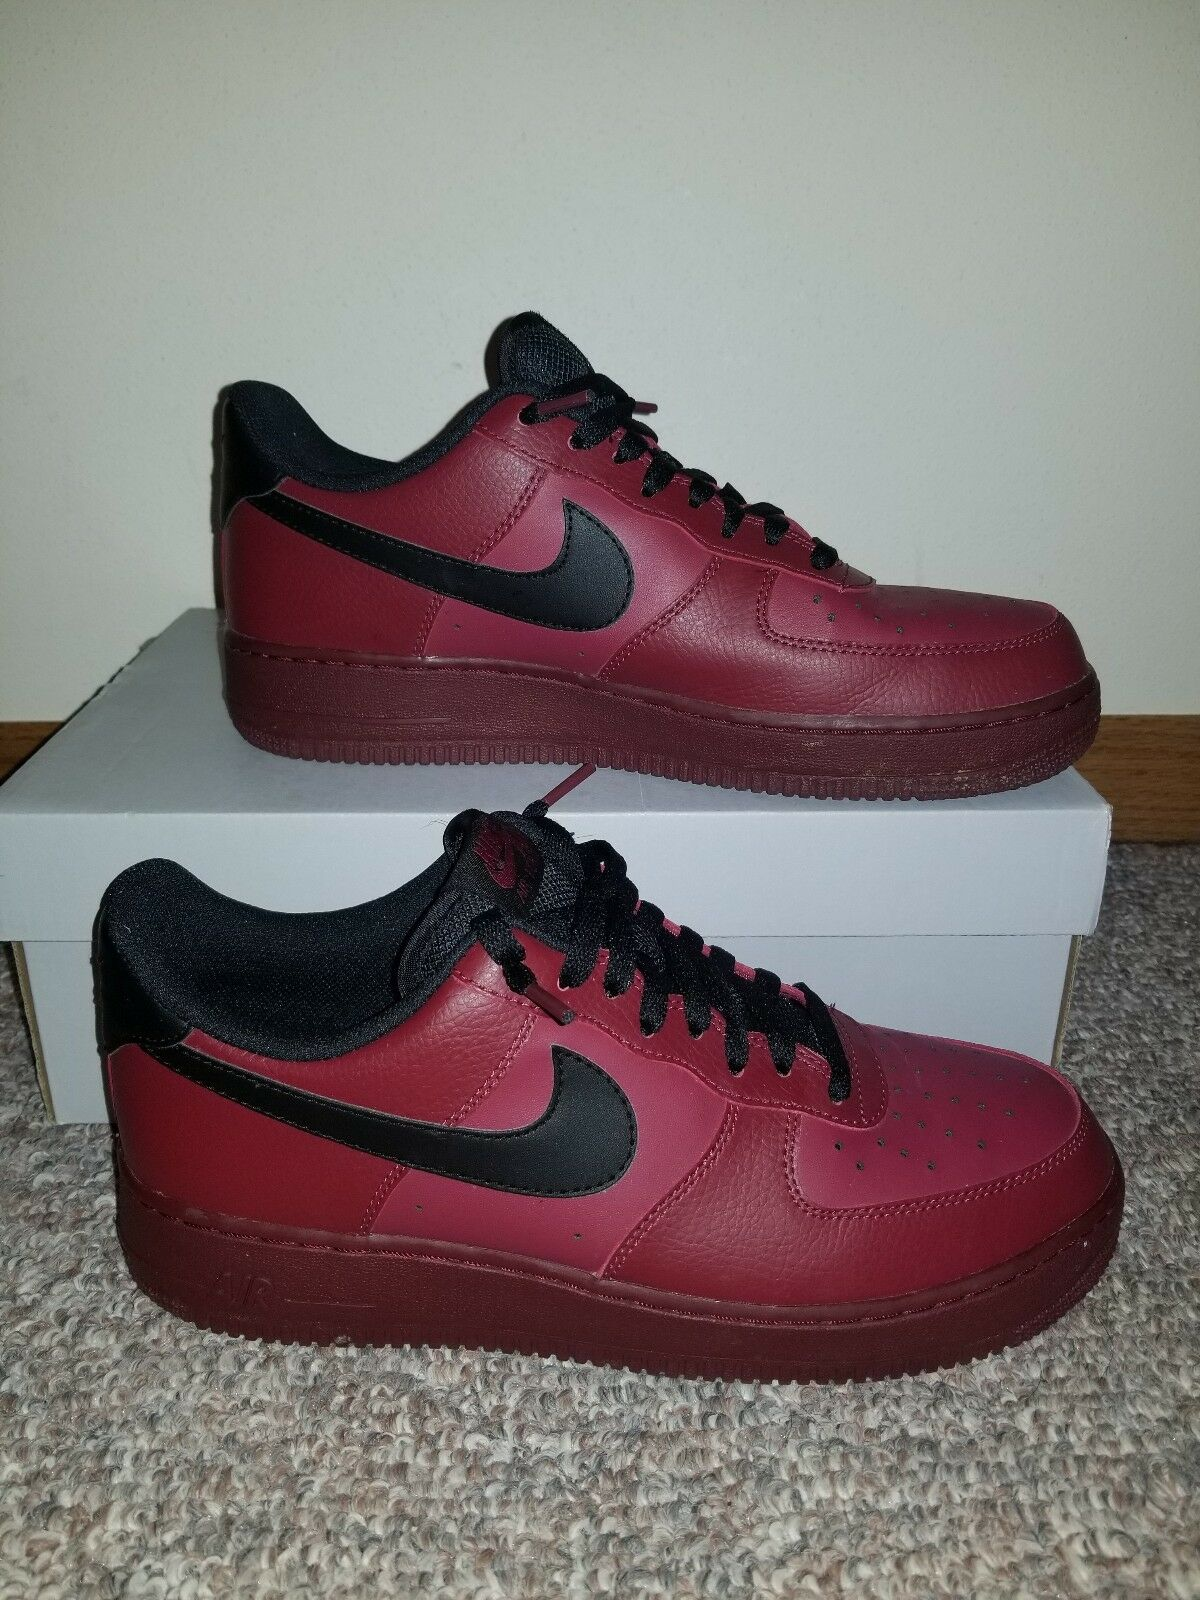 Nike Air force 1 low 07 dark red PreOwned Size 9